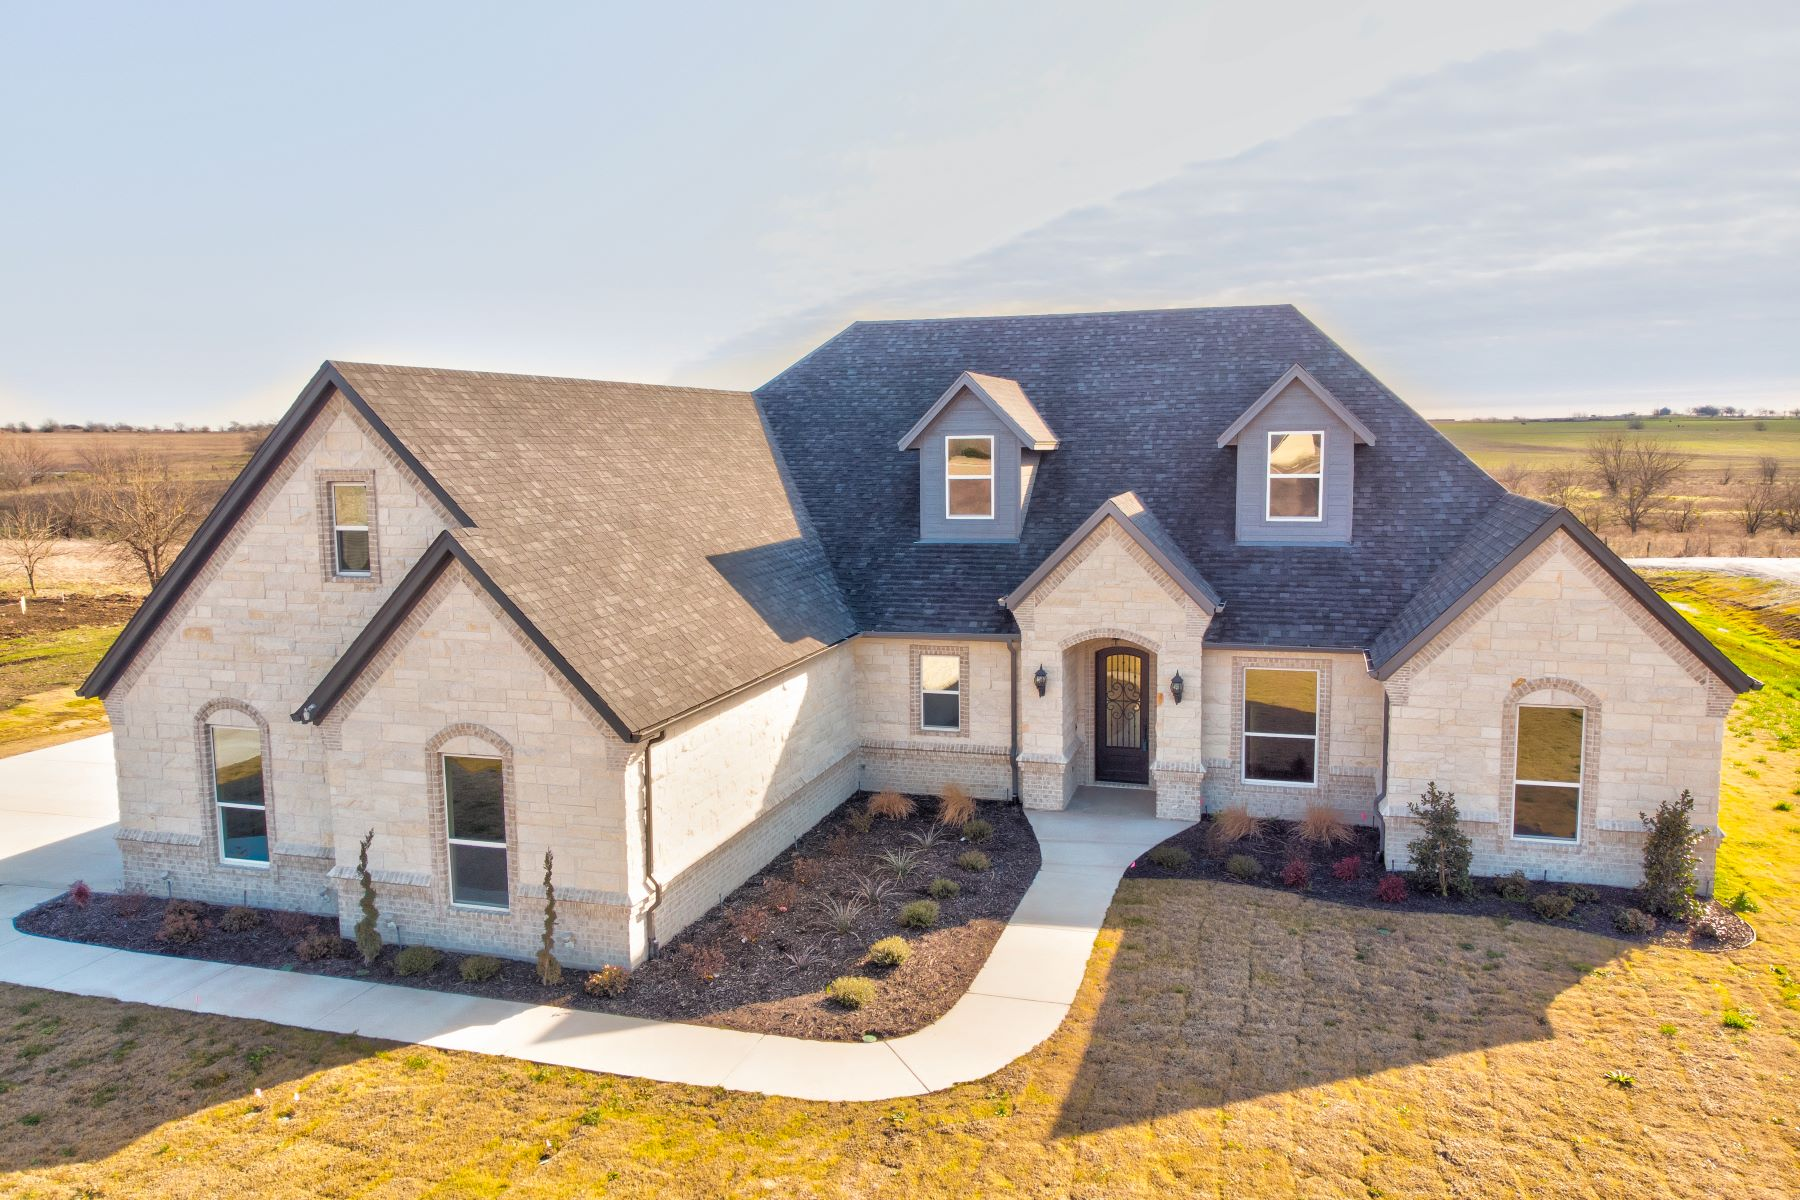 Single Family Homes für Verkauf beim Luxurious new construction on over an acre in highly sought after Godley ISD 6300 Nobu Place, Godley, Texas 76044 Vereinigte Staaten